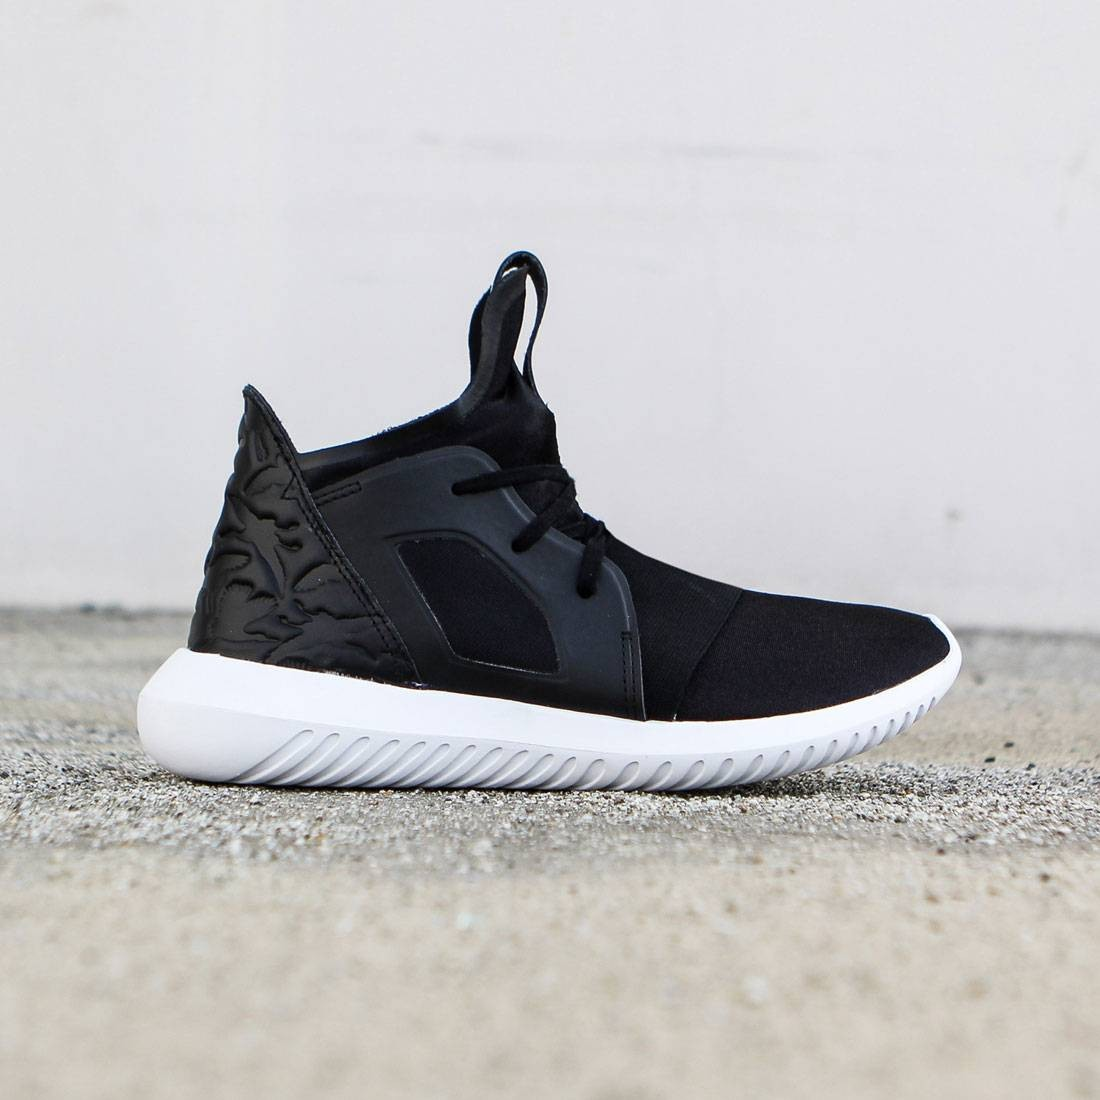 promo code e1a7a 4046f uk mens and womens adidas tubular 814f4 50d94  uk adidas women tubular  defiant black core black core white 494f0 5553b